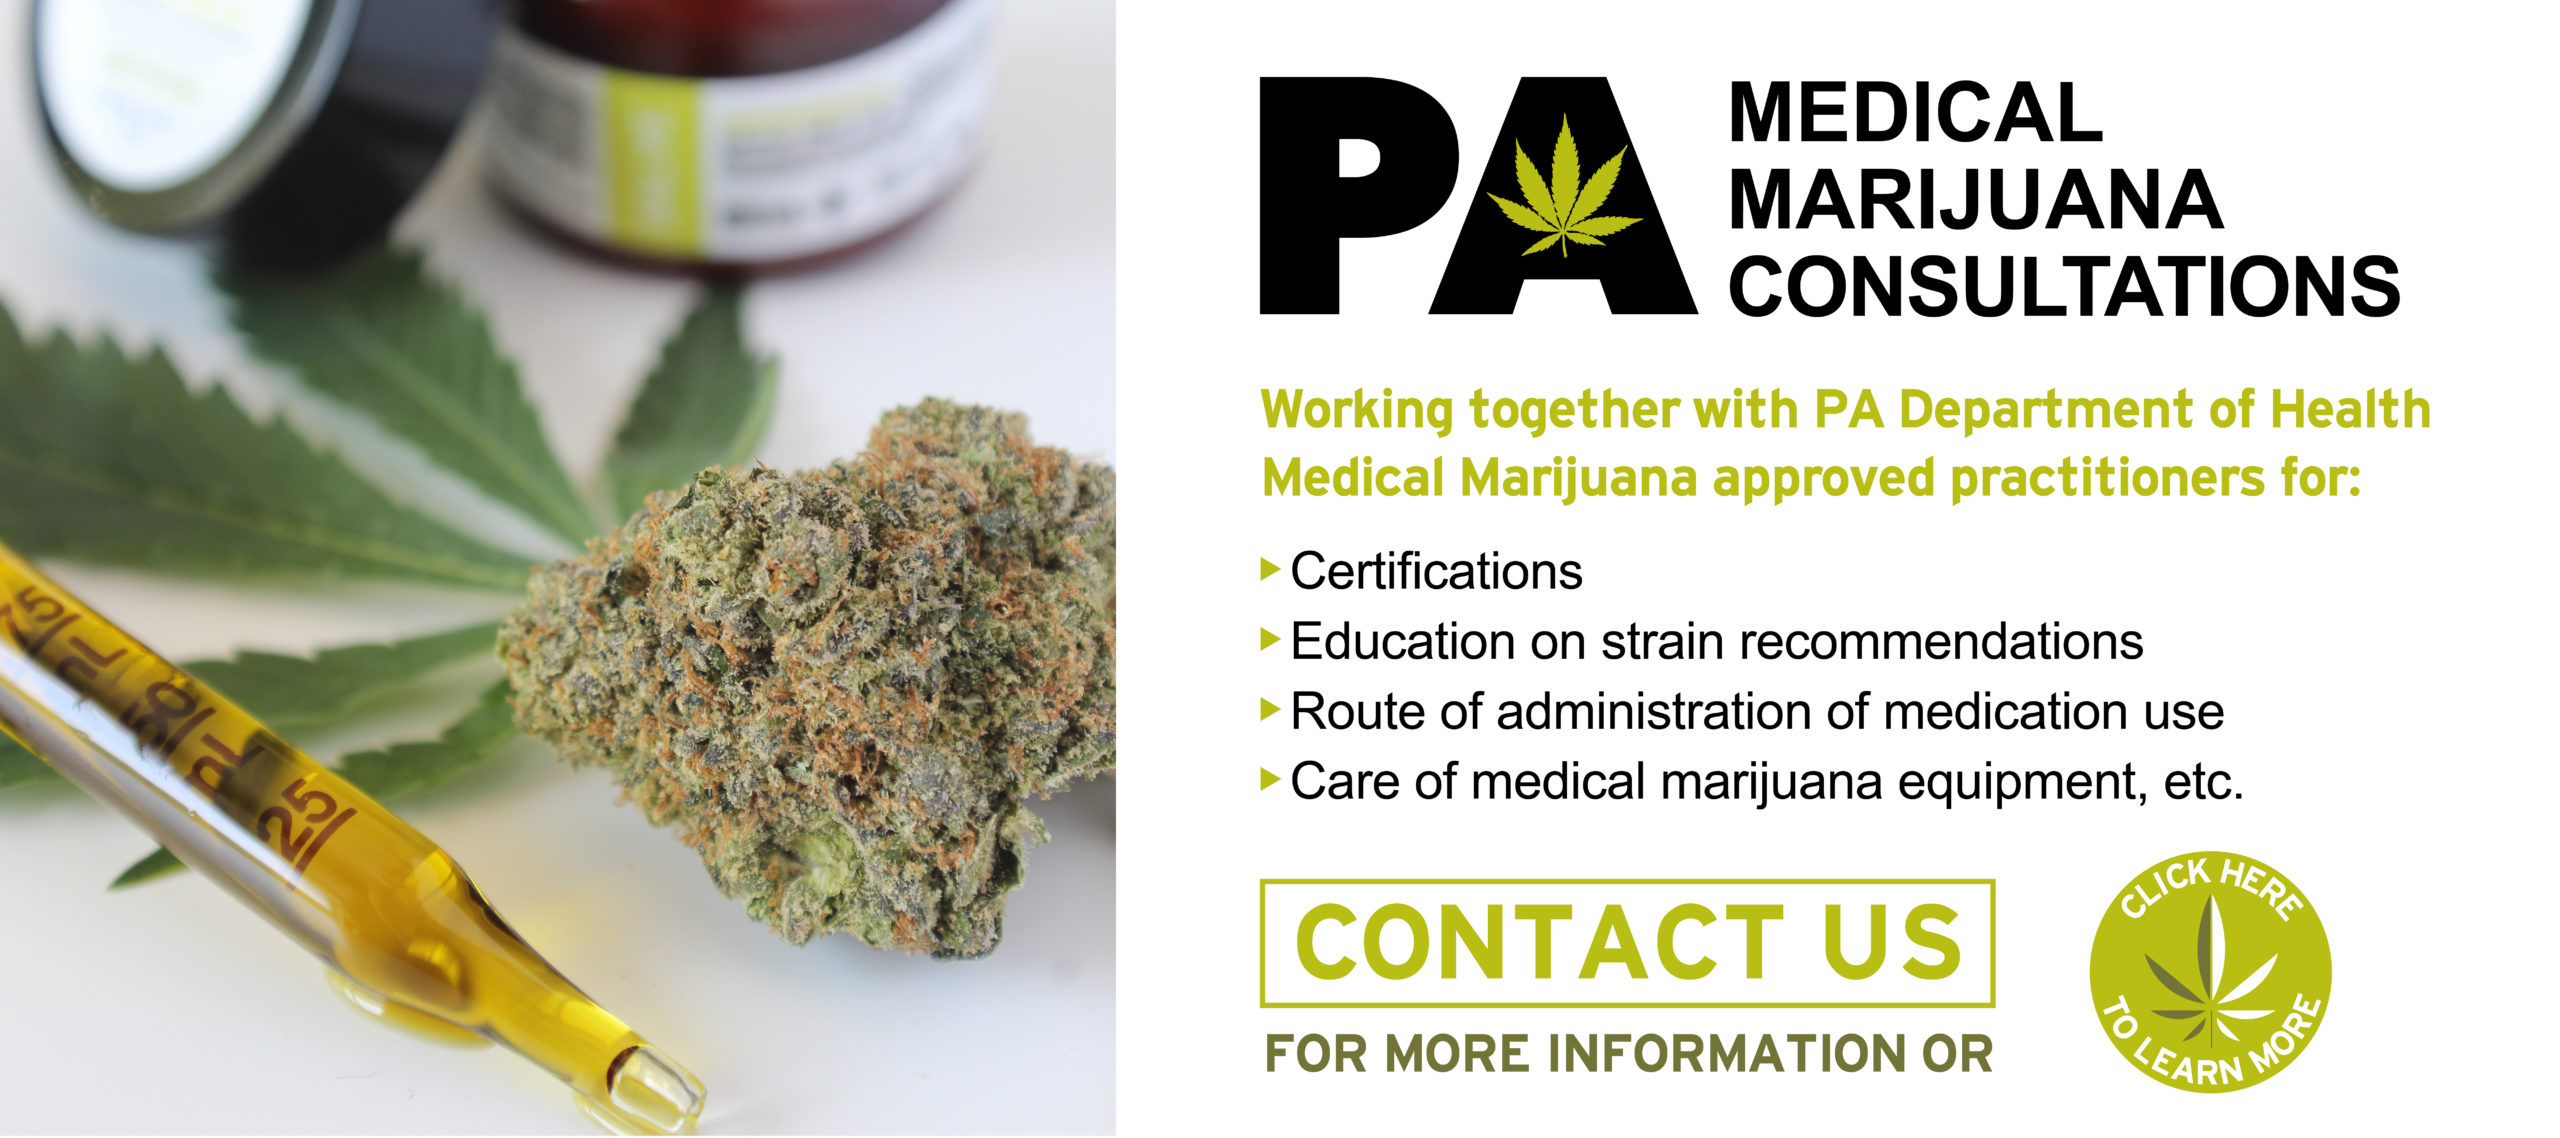 PA Medical Marijuana Consultations | Hempfield Botanicals